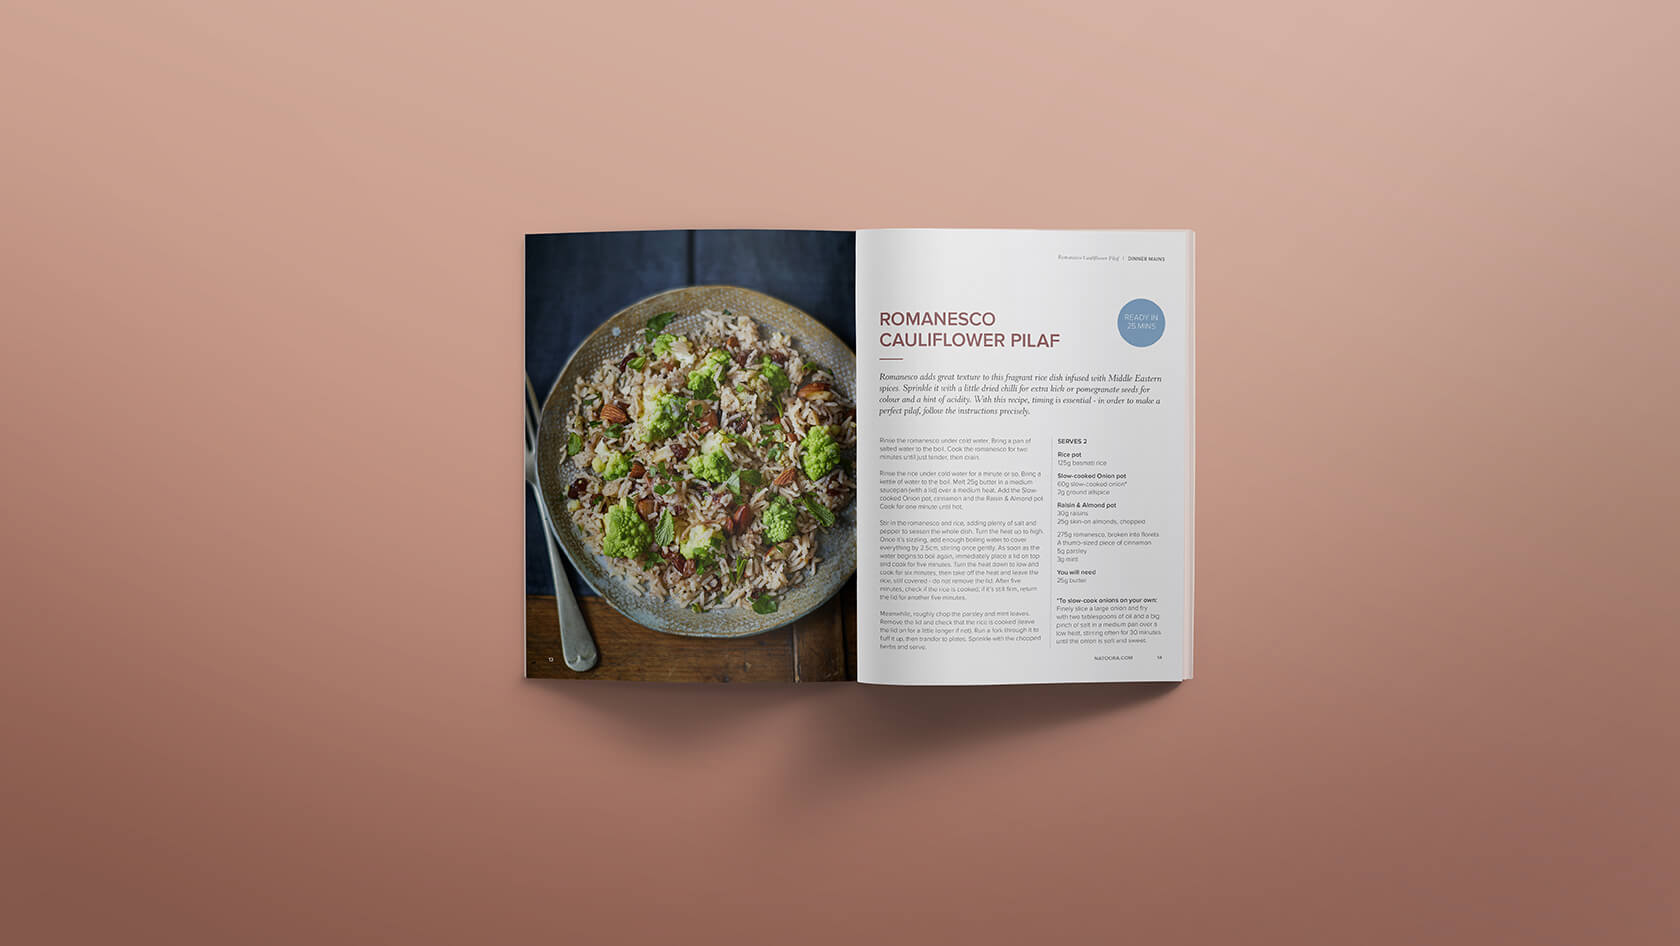 Cauliflower pilaf recipe mock-up with photography of the dish